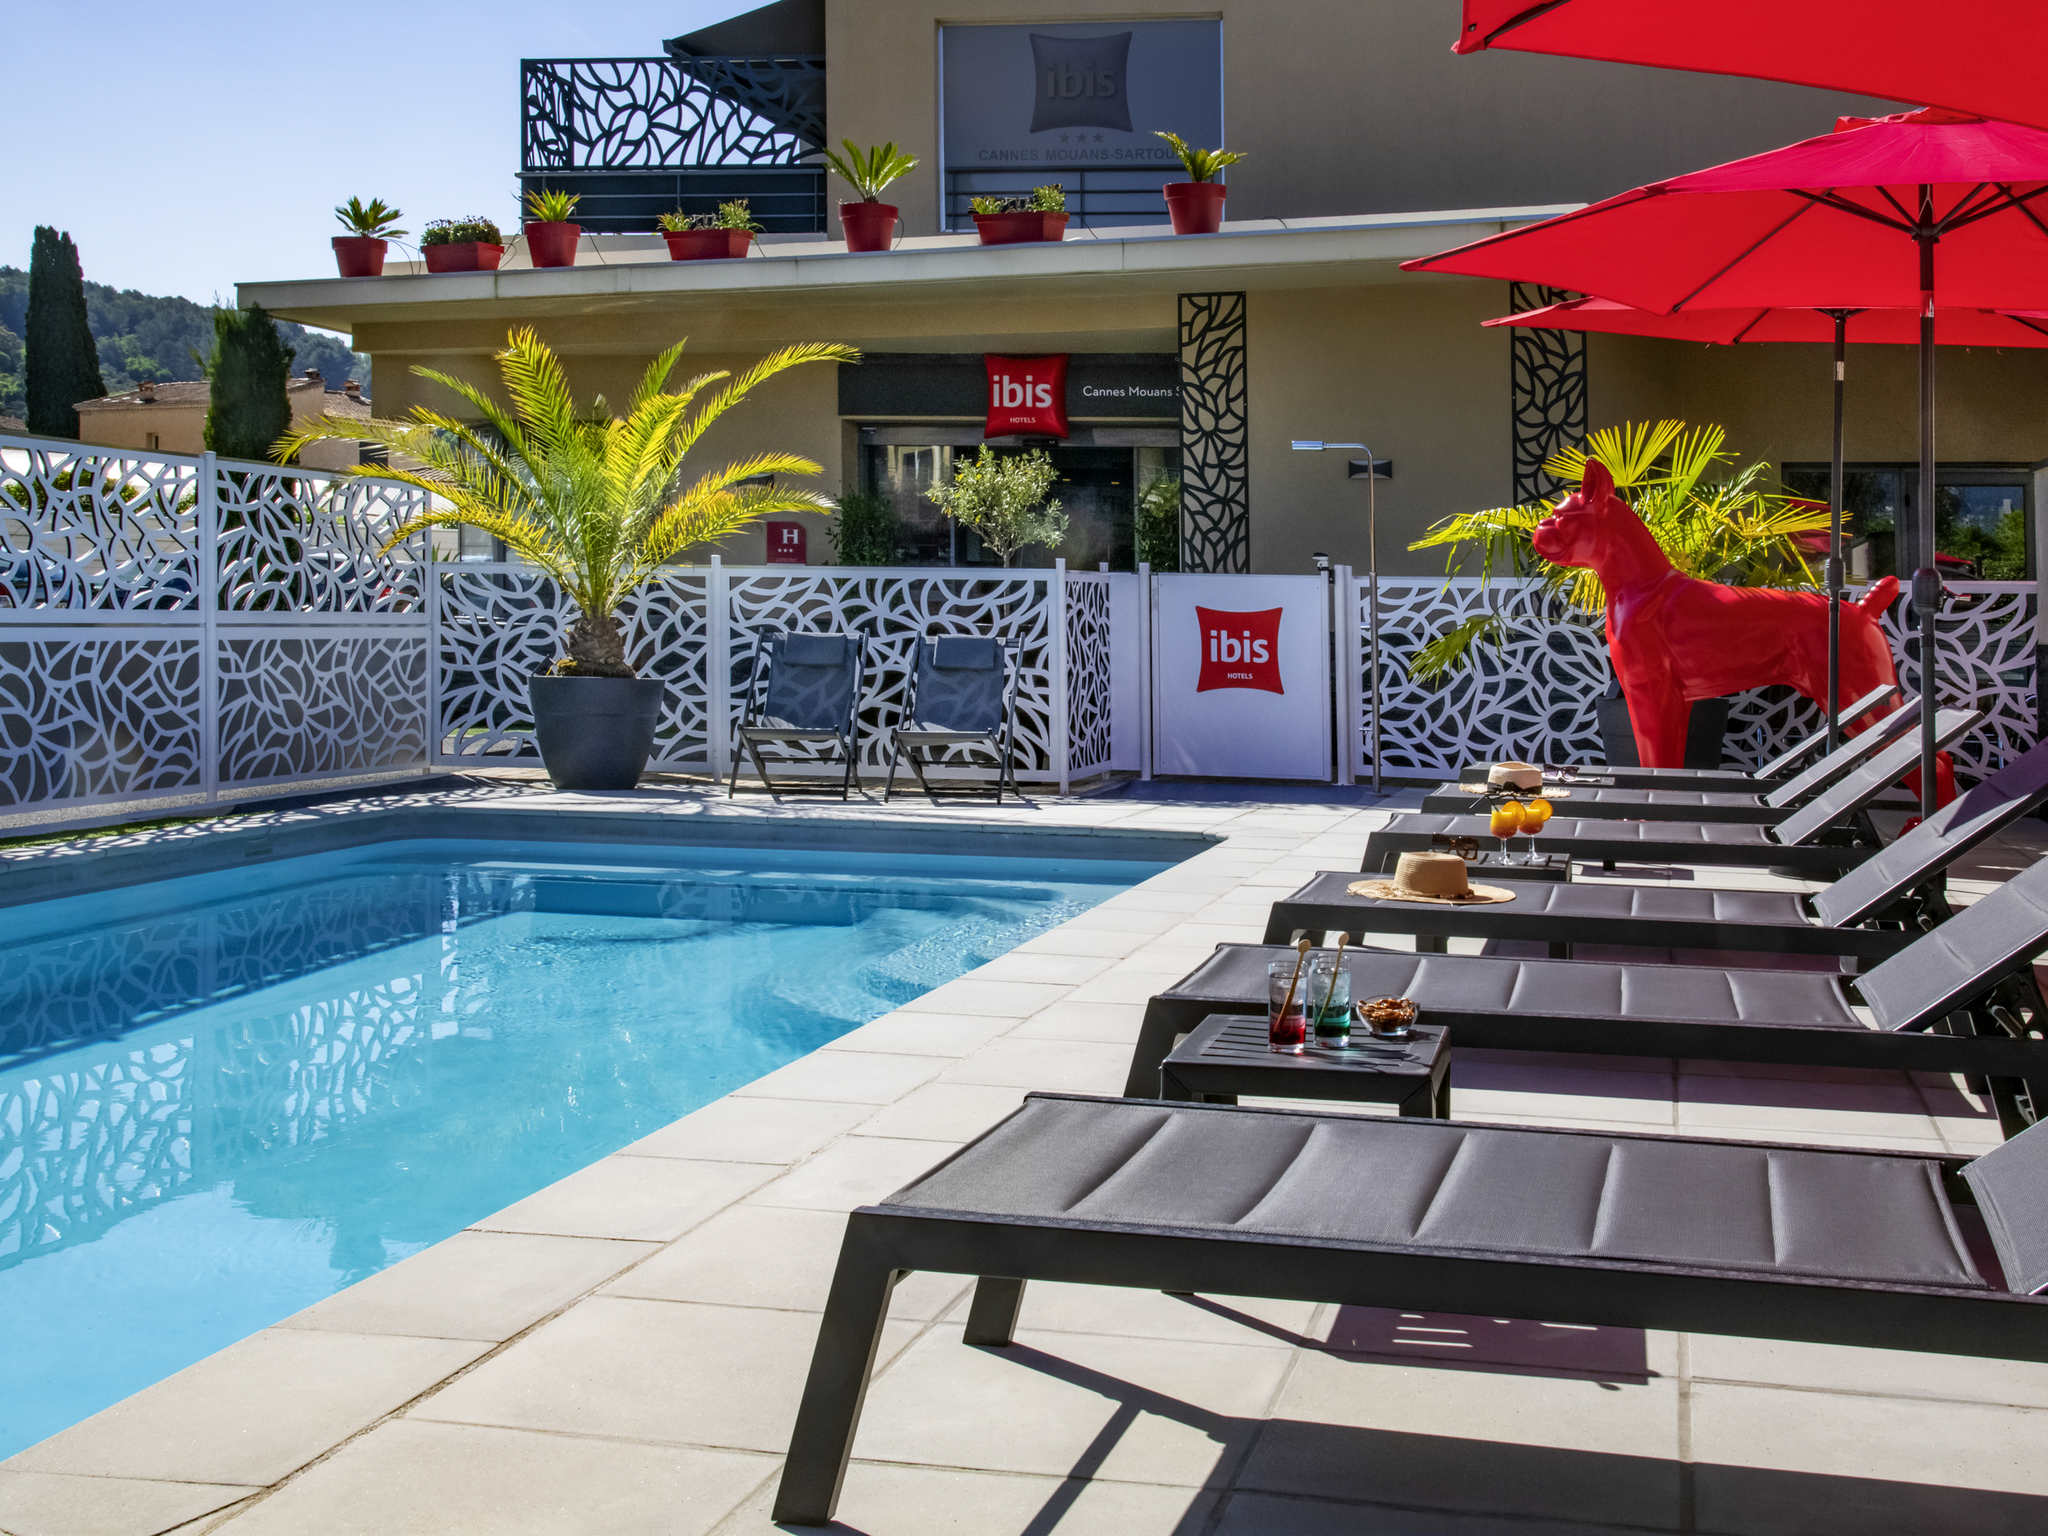 Hotell – ibis Cannes Mouans-Sartoux